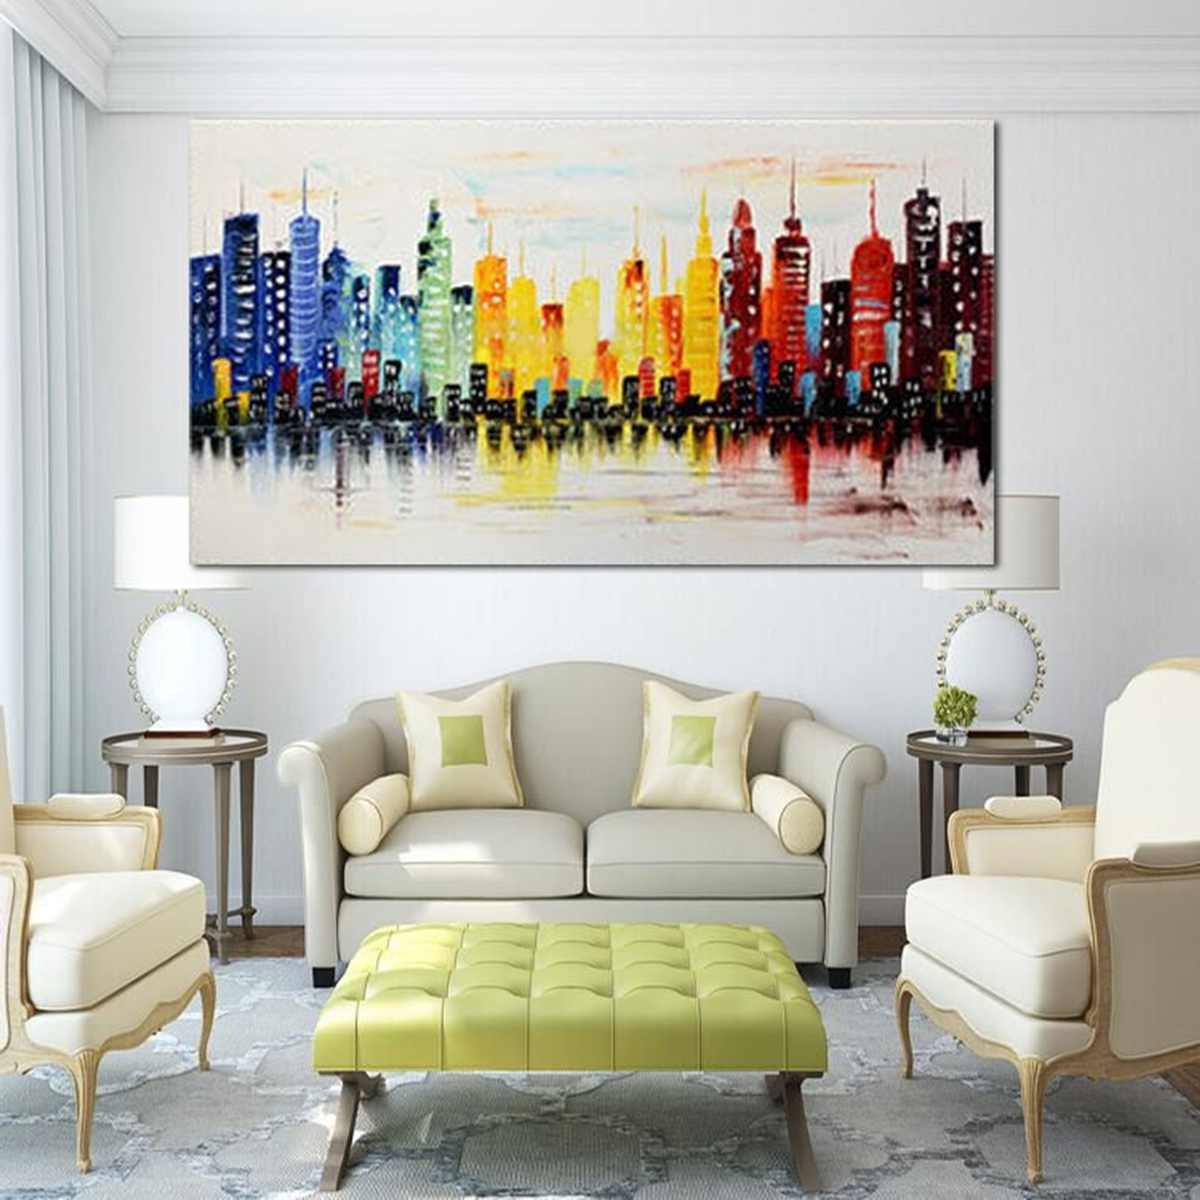 120X60Cm Modern City Canvas Abstract Painting Print Living Room Art With Regard To Recent Art Wall Decor (View 8 of 15)